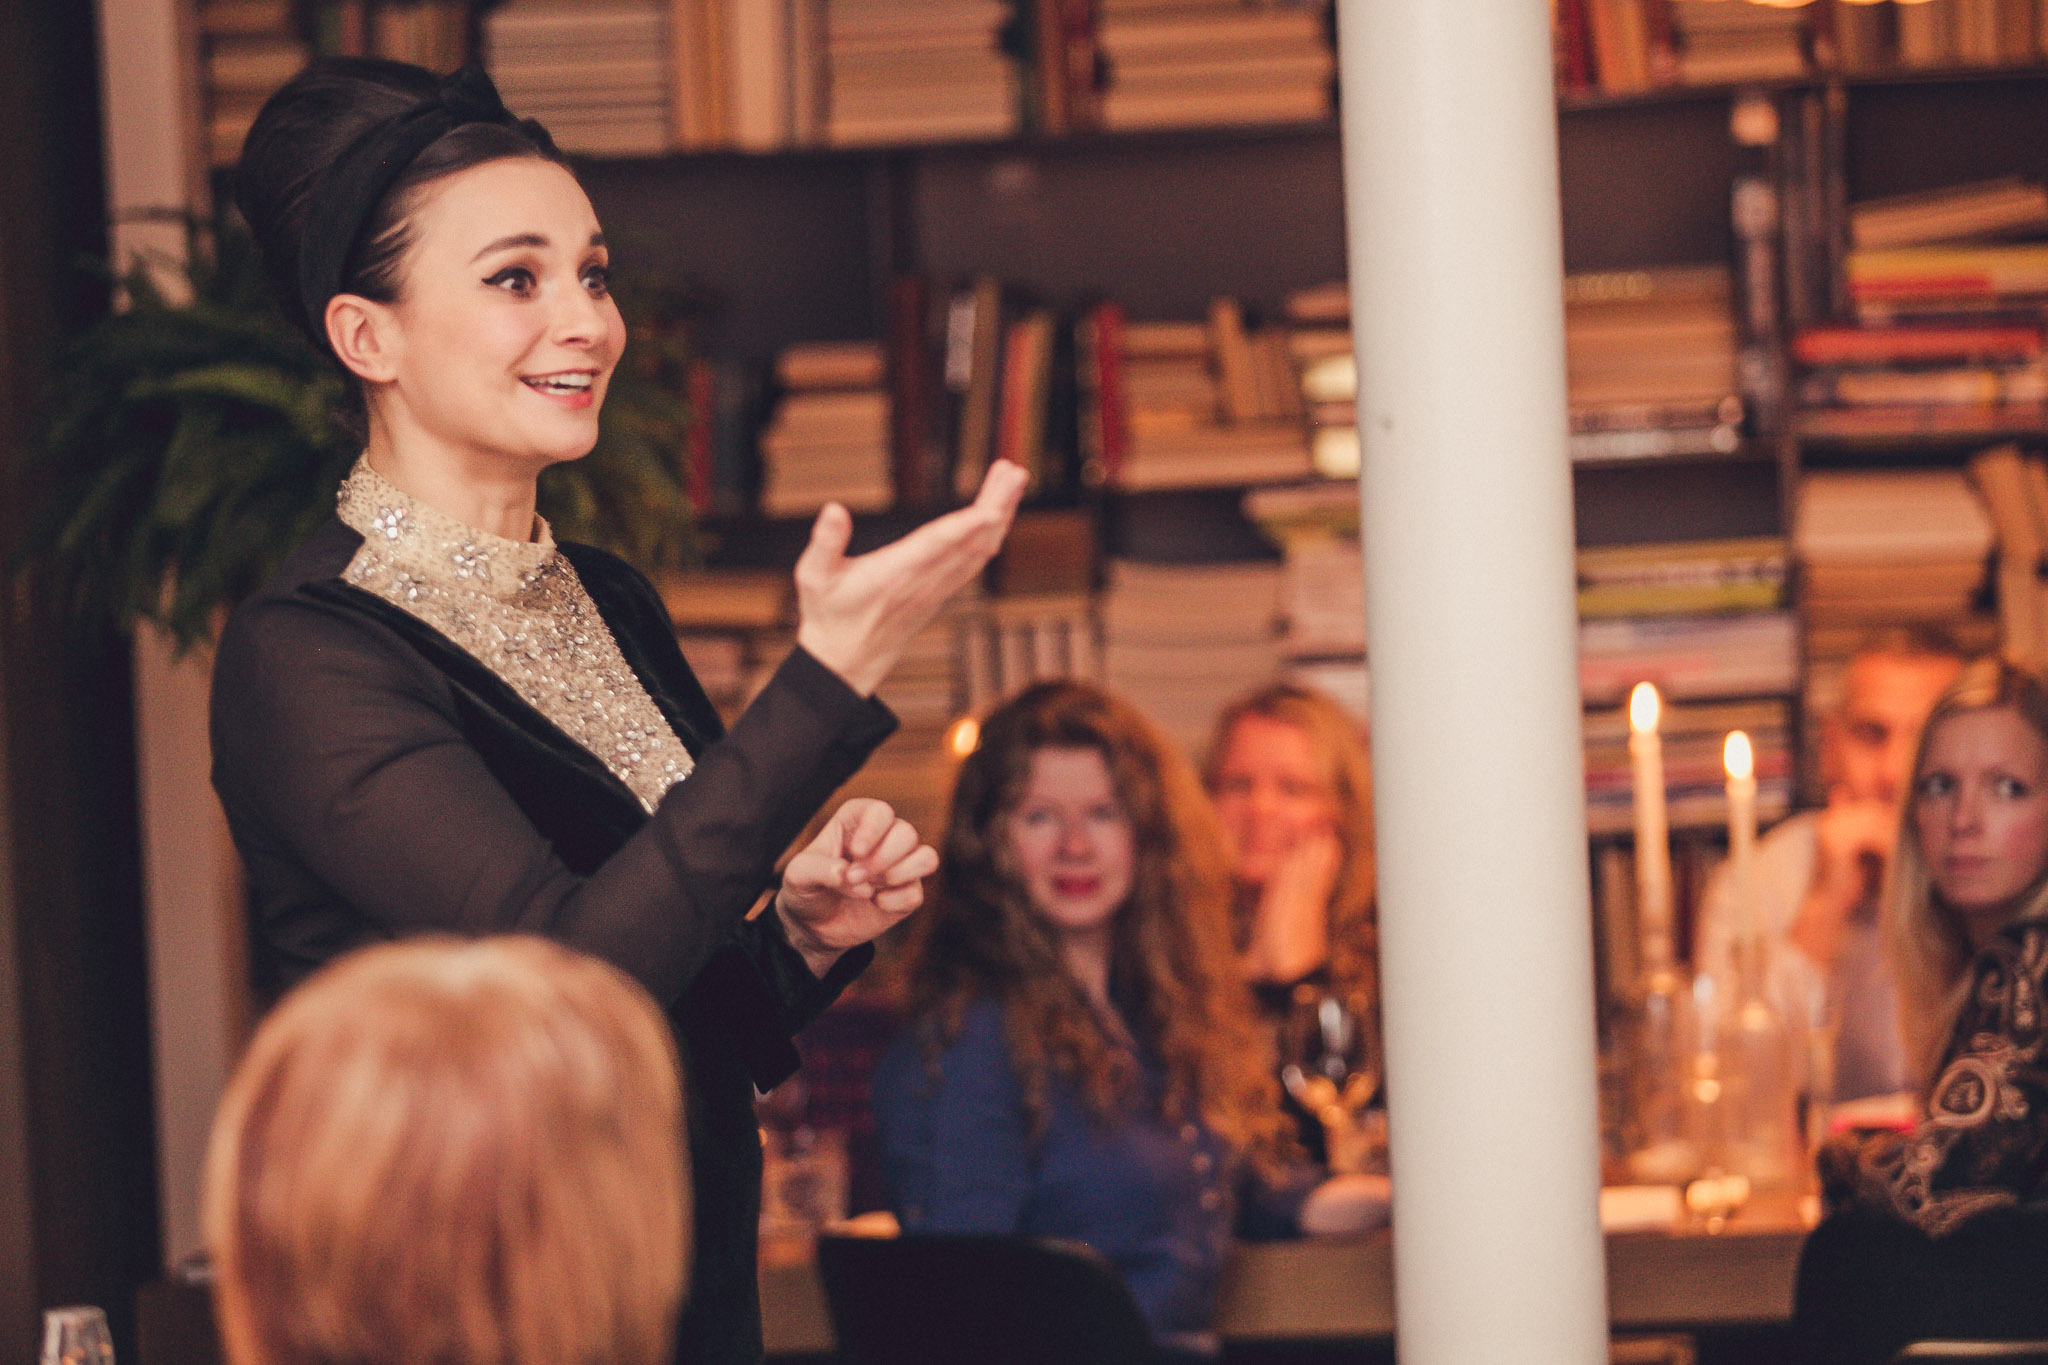 Gizzi Erskine at Tigerlily in Edinburgh, Scotland. Photographed by Scottish food and drink PR experts.